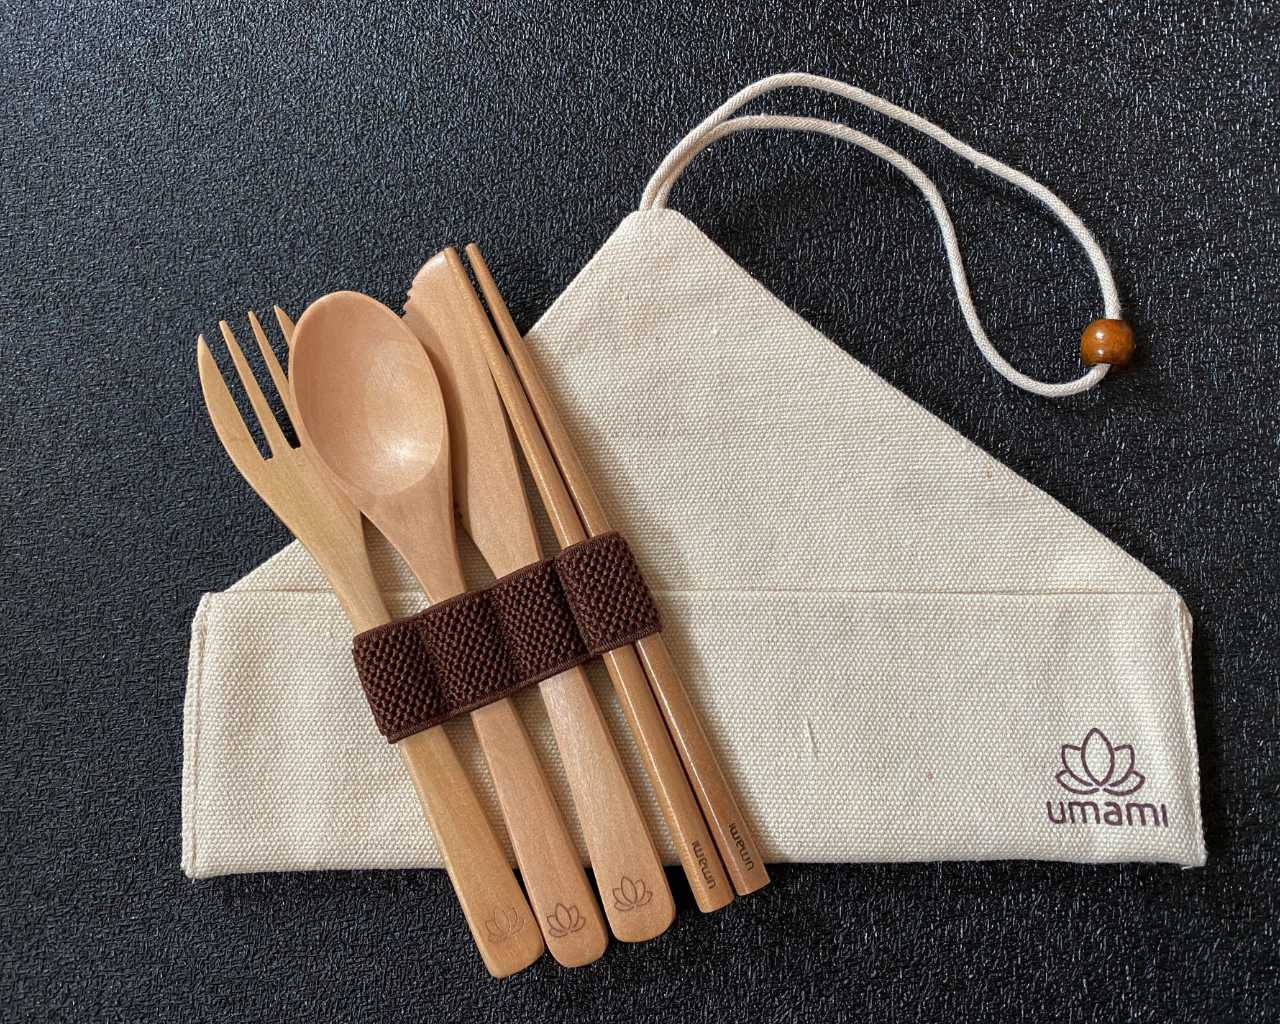 Standard Cutlery Set 4 Pieces